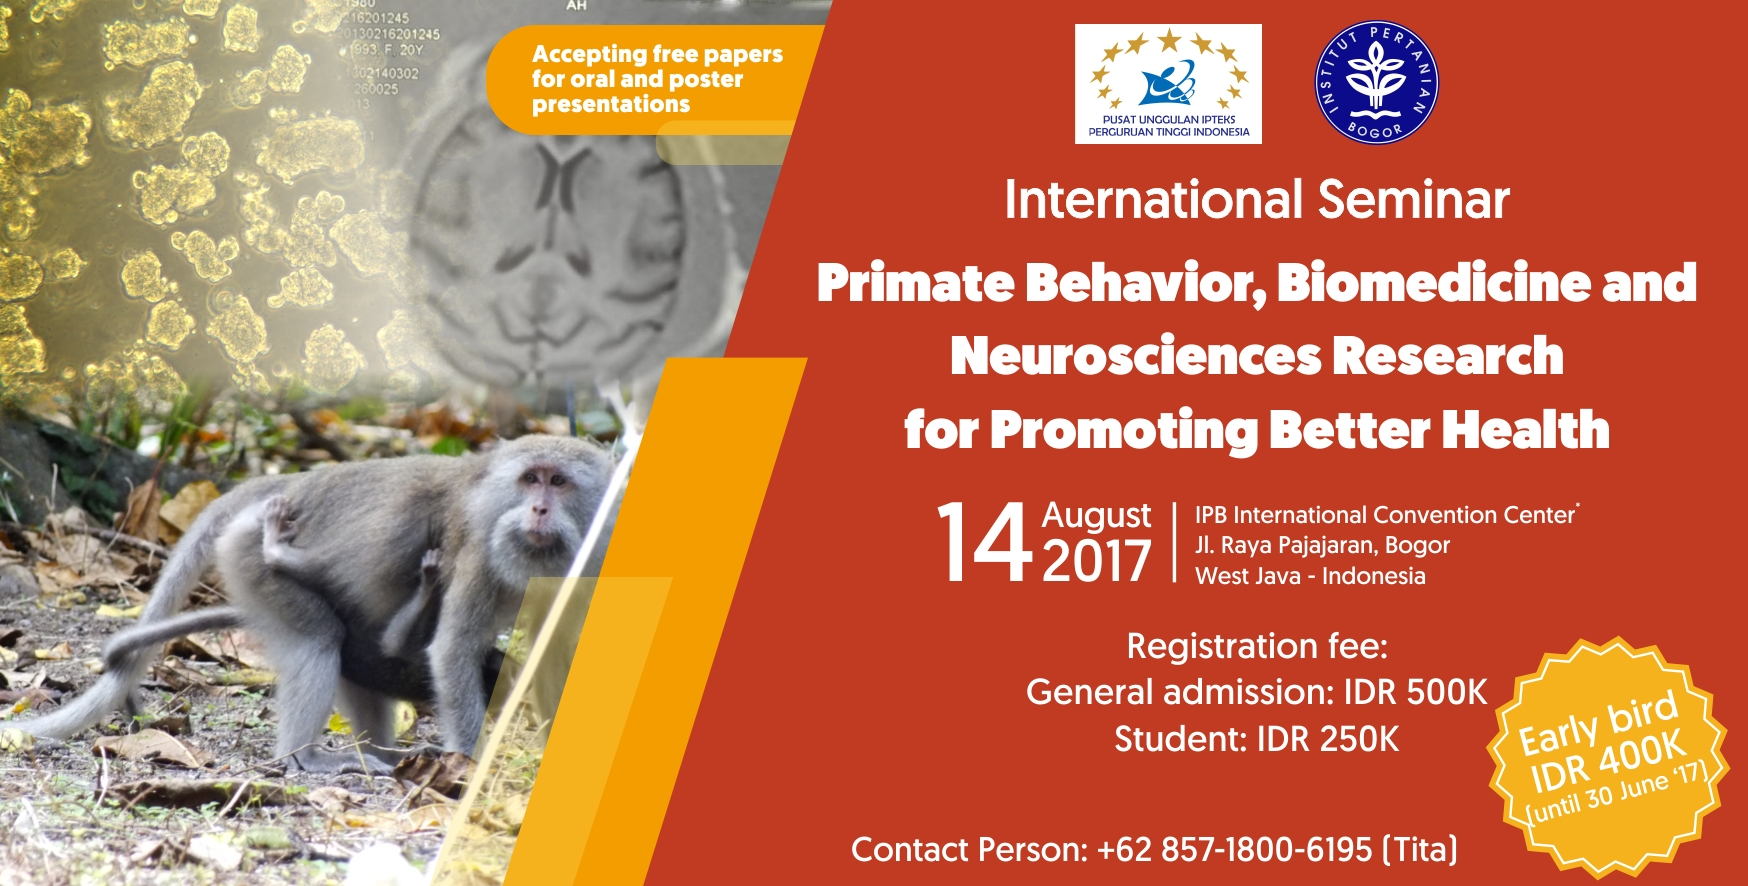 International Seminar: Primate Behavior, Biomedicine and Neurosciences Research for Promoting Better Health